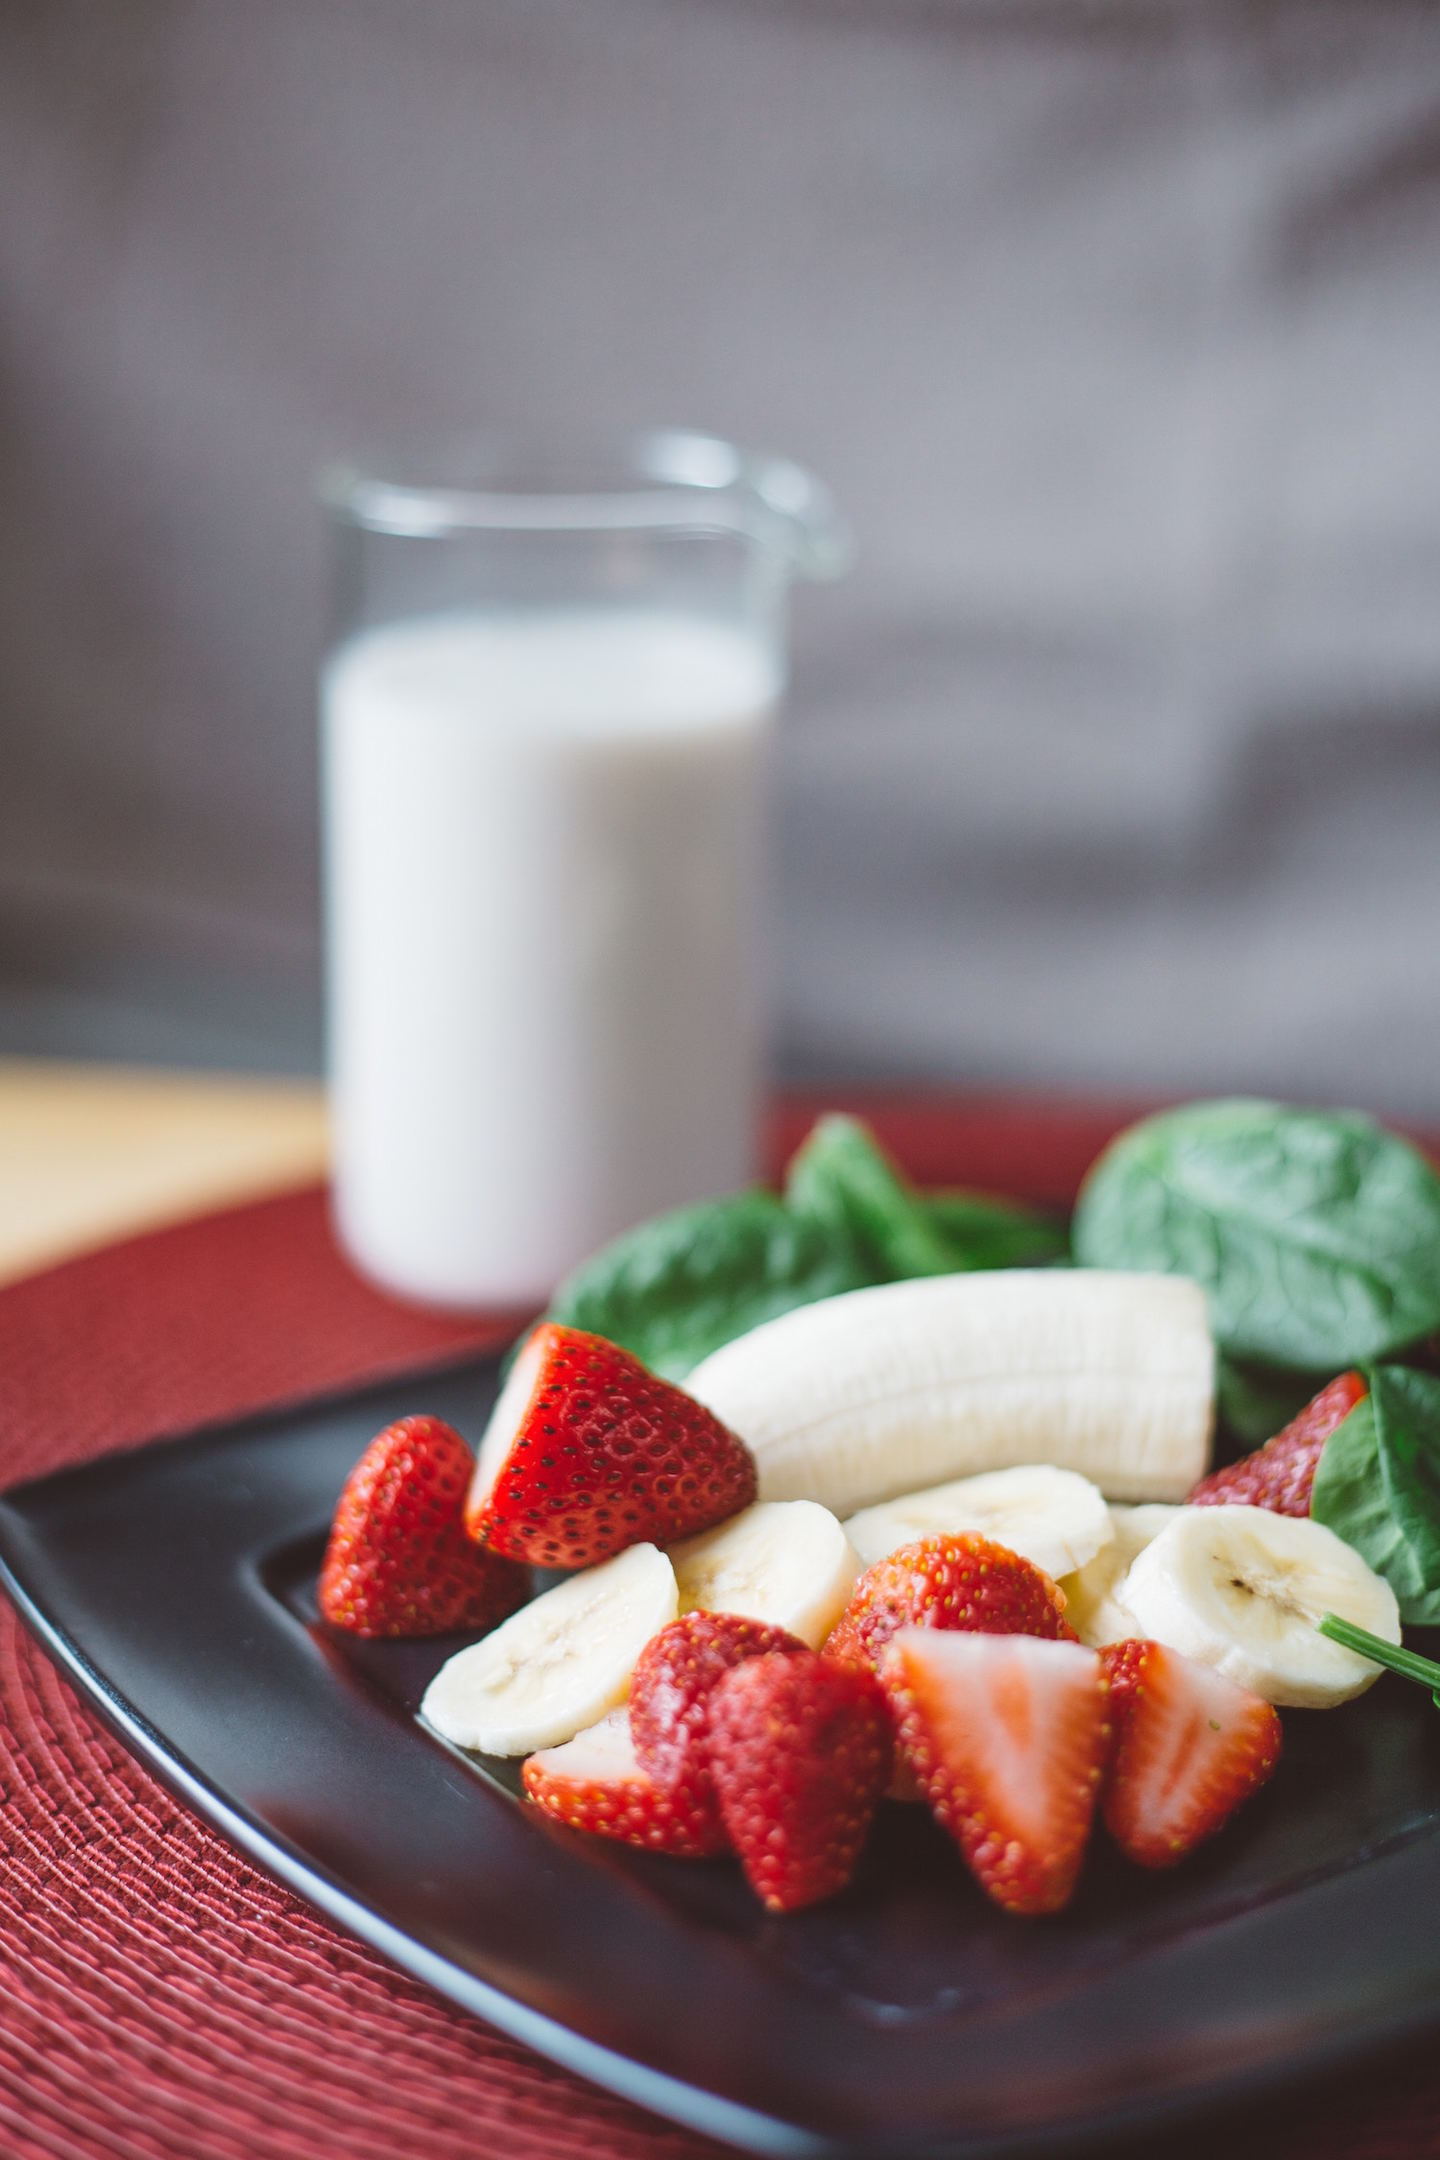 Glass of milk with banana and strawberries